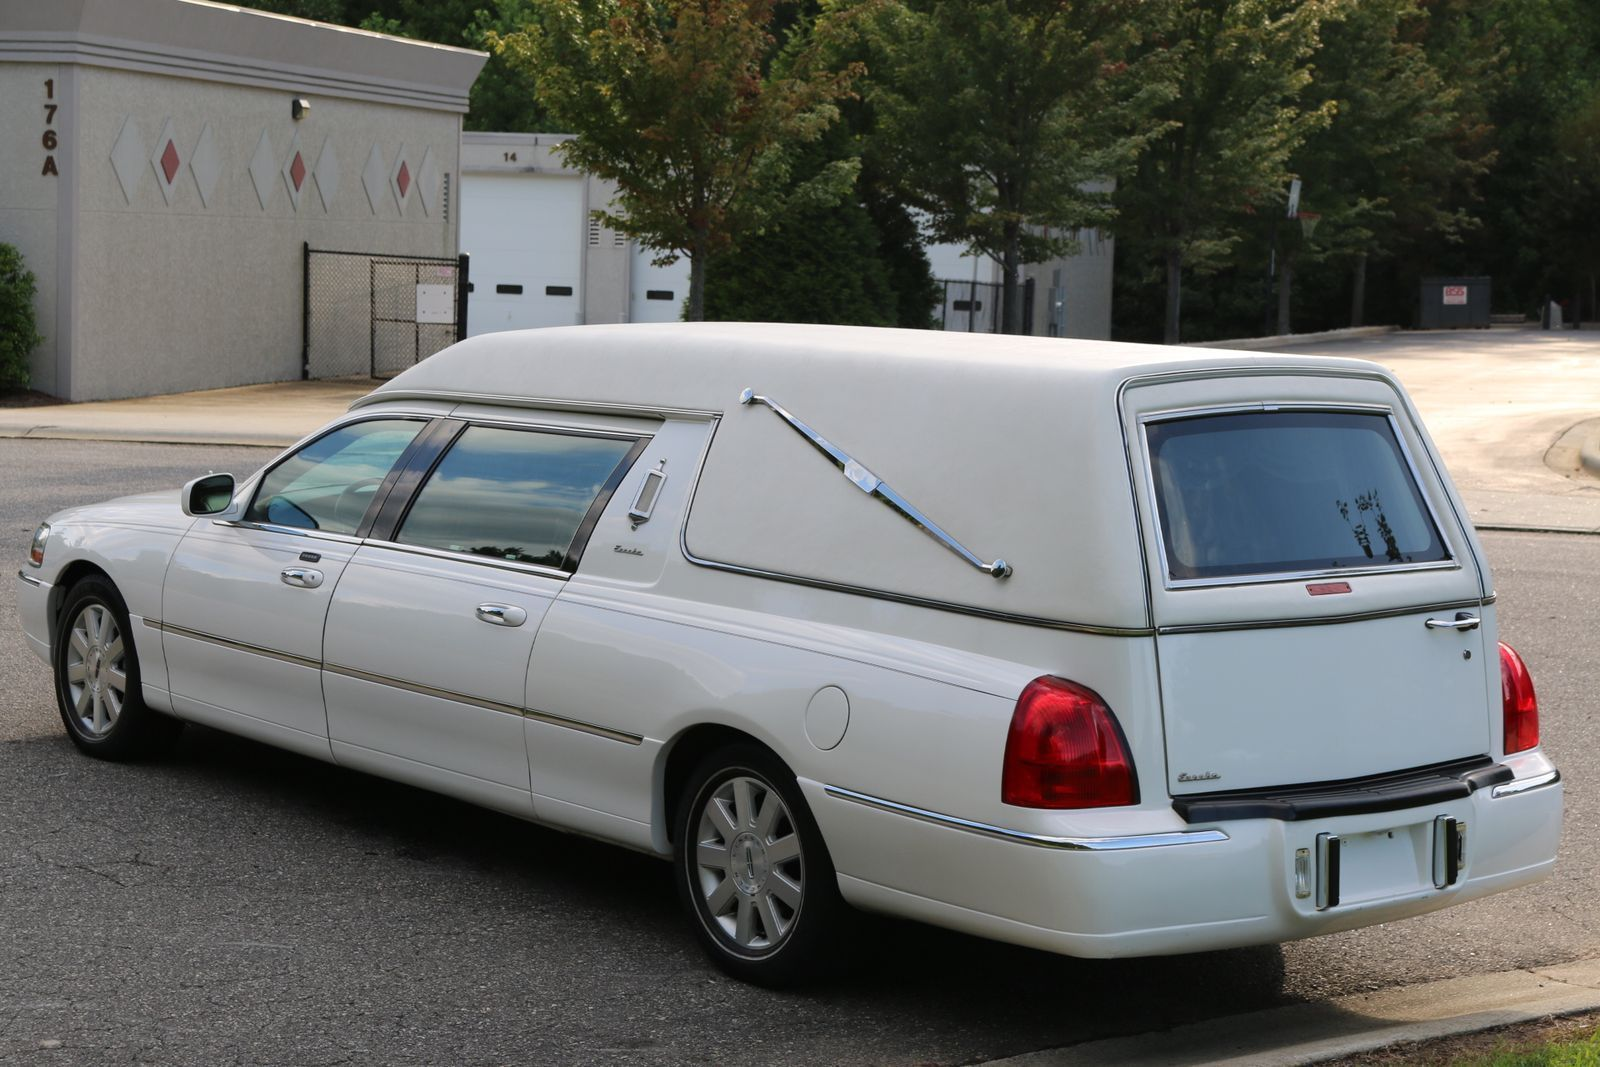 Image result for lincoln town car hearse motorized road vehicles in the usa and canada including motorcycles pinterest lincoln town car limo and cars